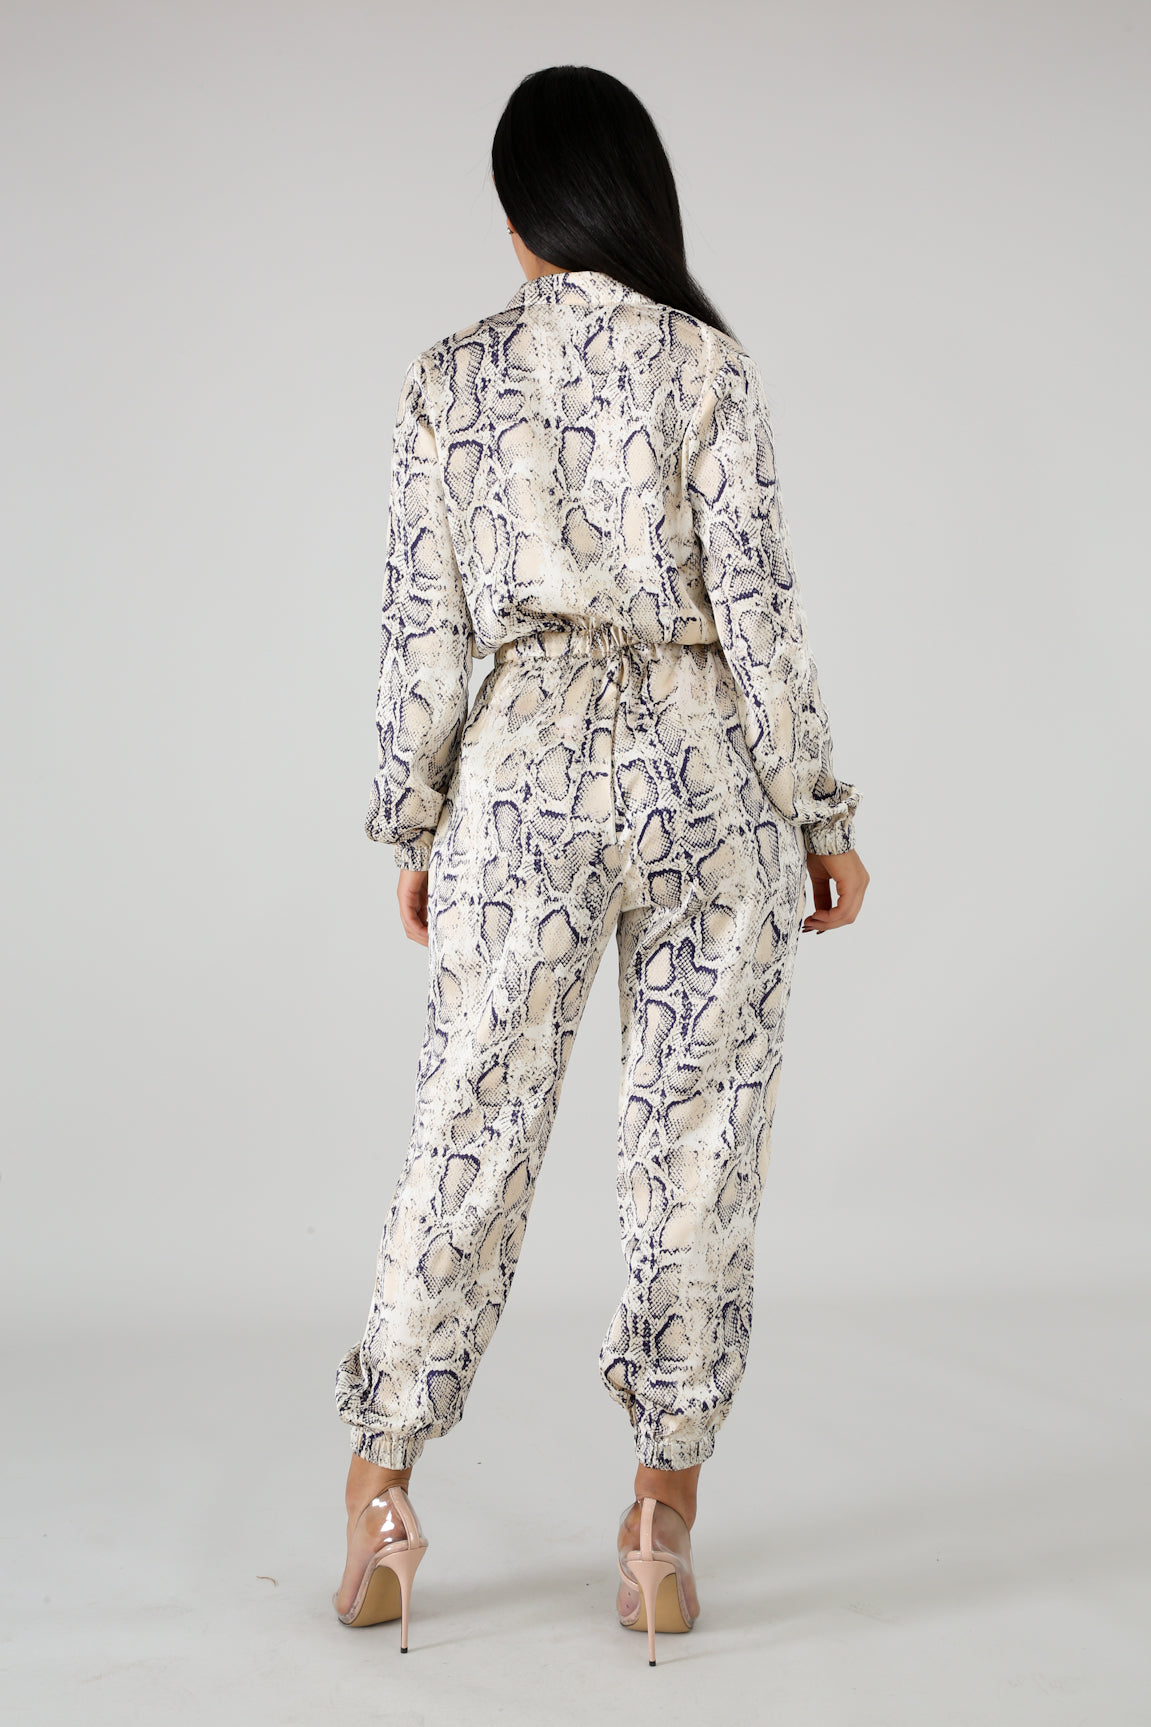 Lauren Wild Jumpsuit Fit Miami Style